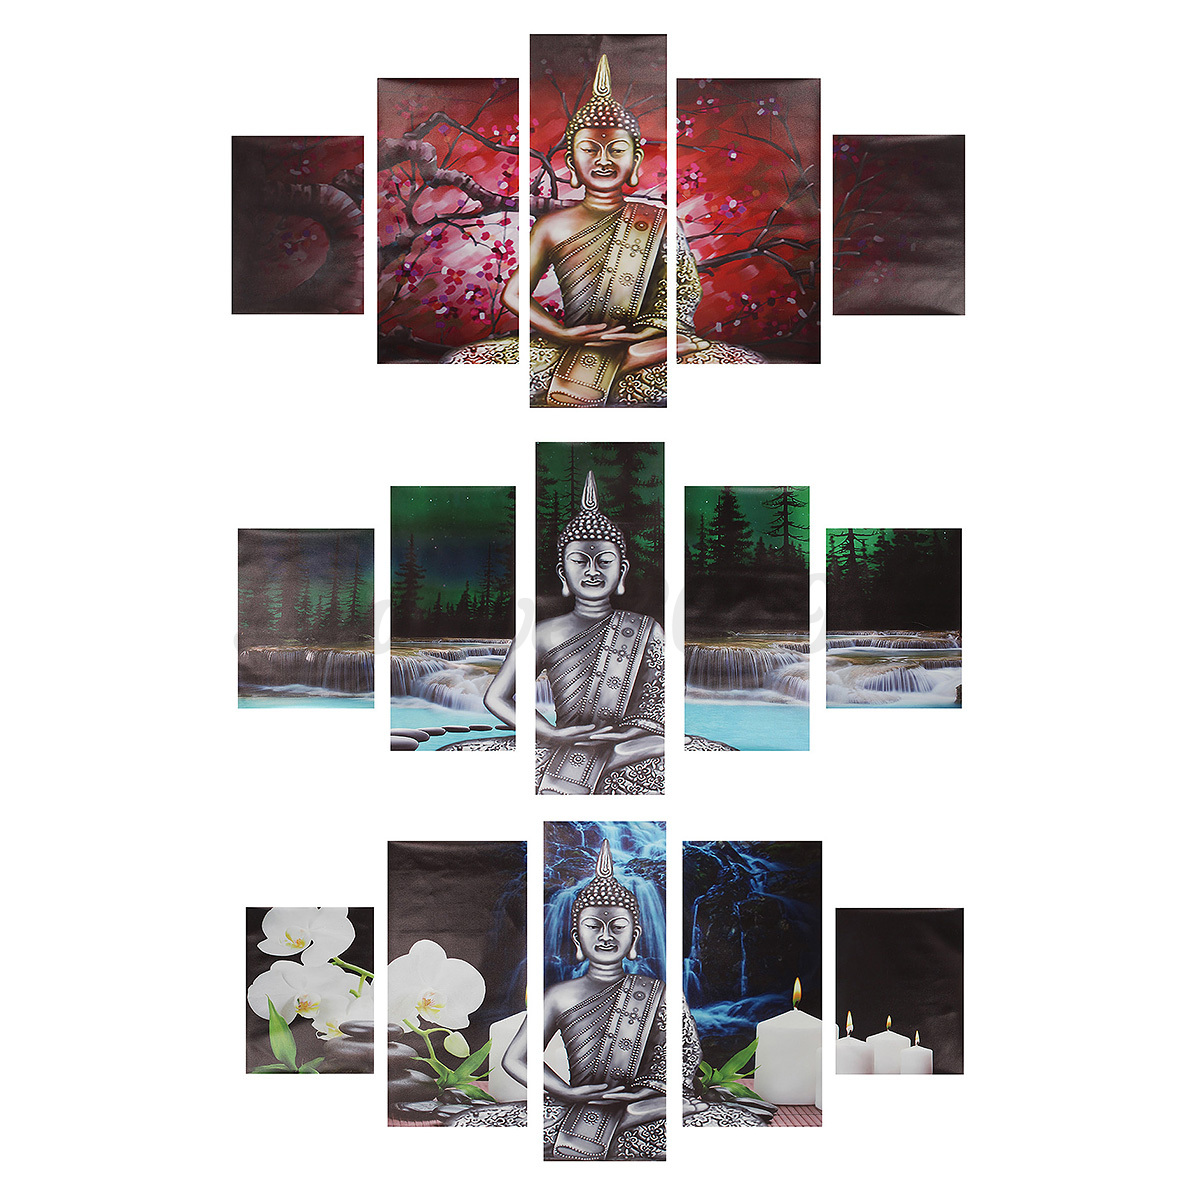 5pcs modern abstract canvas painting print picture wall art home decor no frame ebay - Home decor promo code paint ...